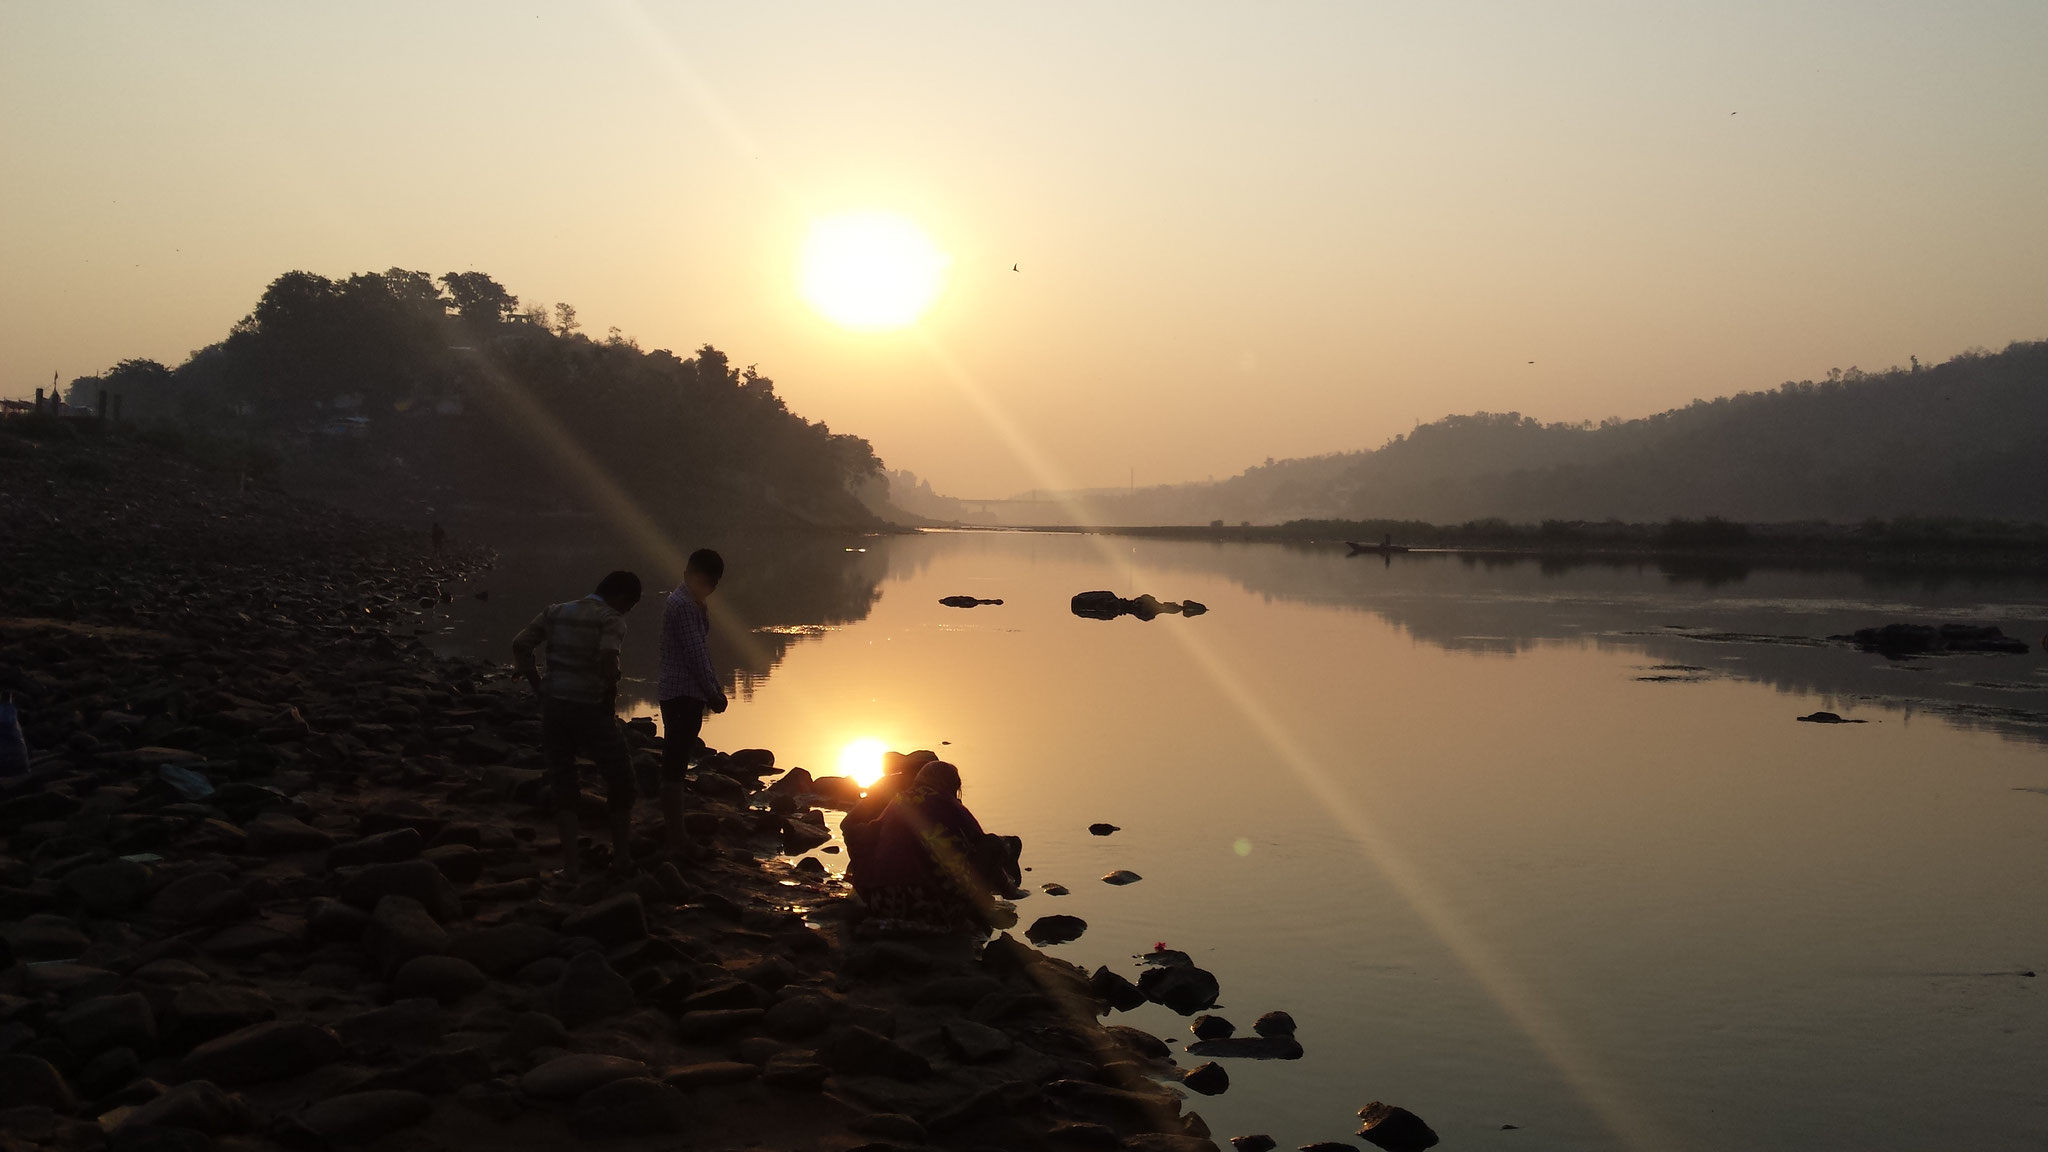 Sonnenuntergang in Omkareshwar